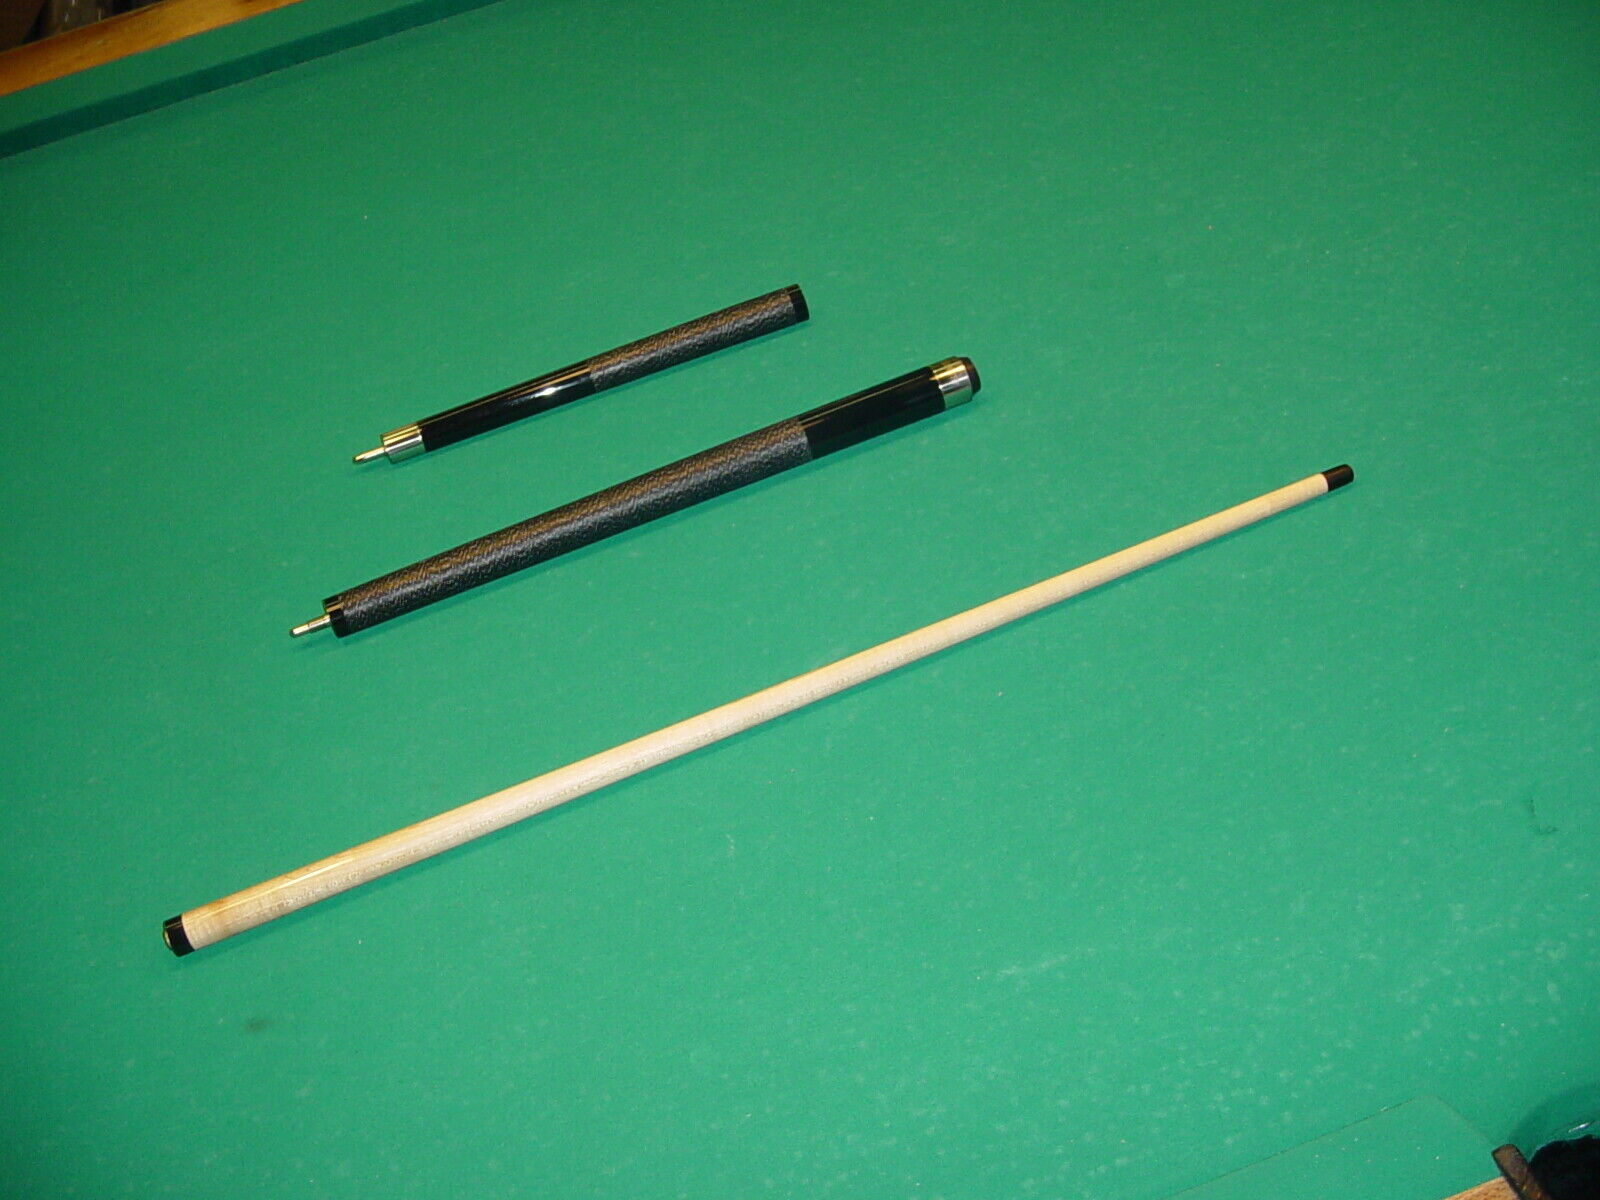 BRAND NEW WORLD'S HEAVIEST BREAK JUMP CUE 25OZ BALLBUSTER  p